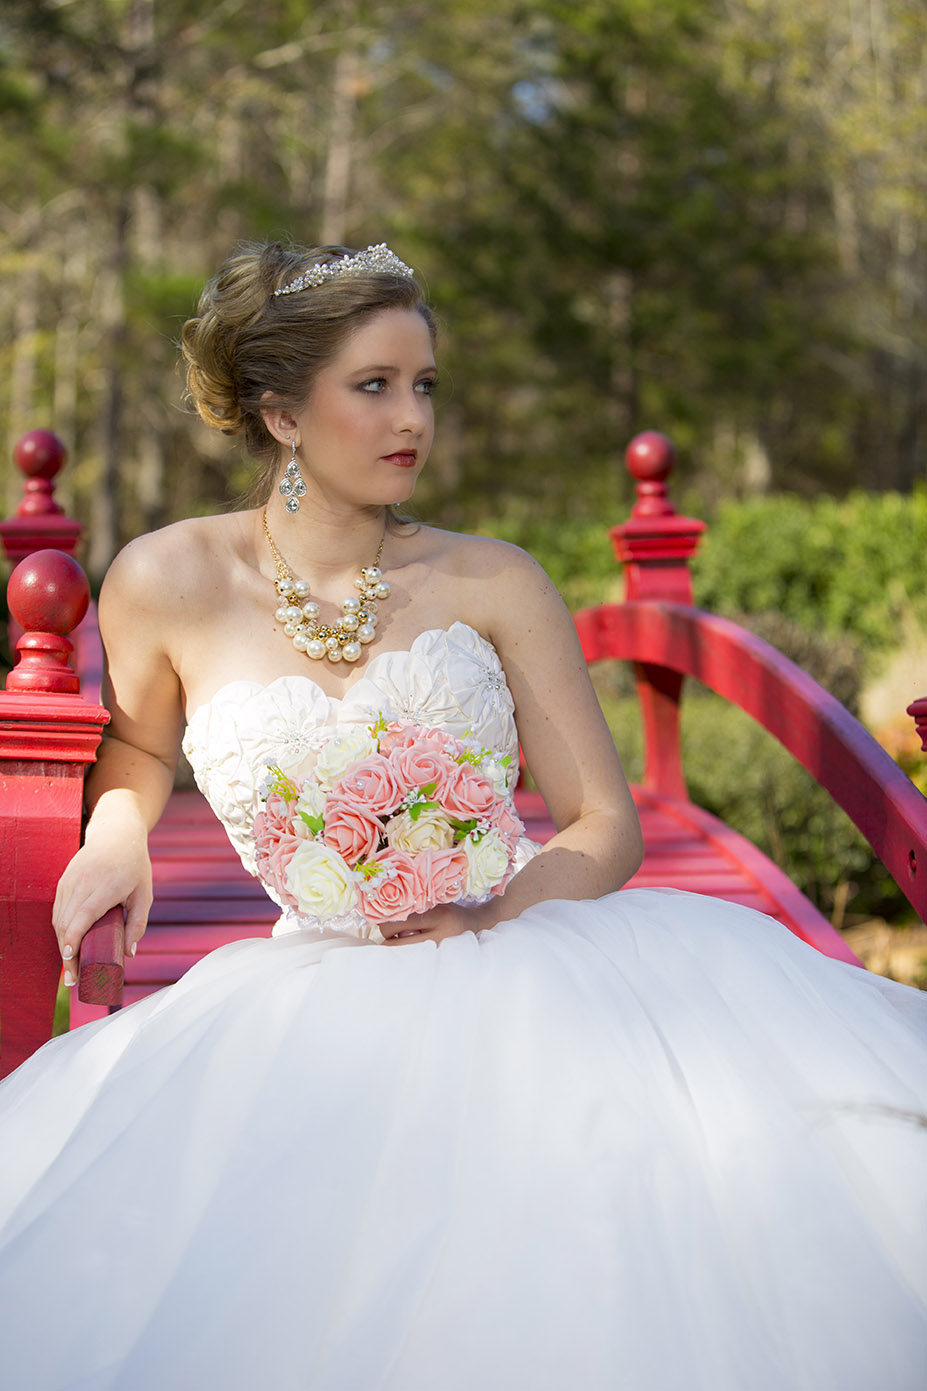 bride posing on a bridge with trees in background and flowers in hand